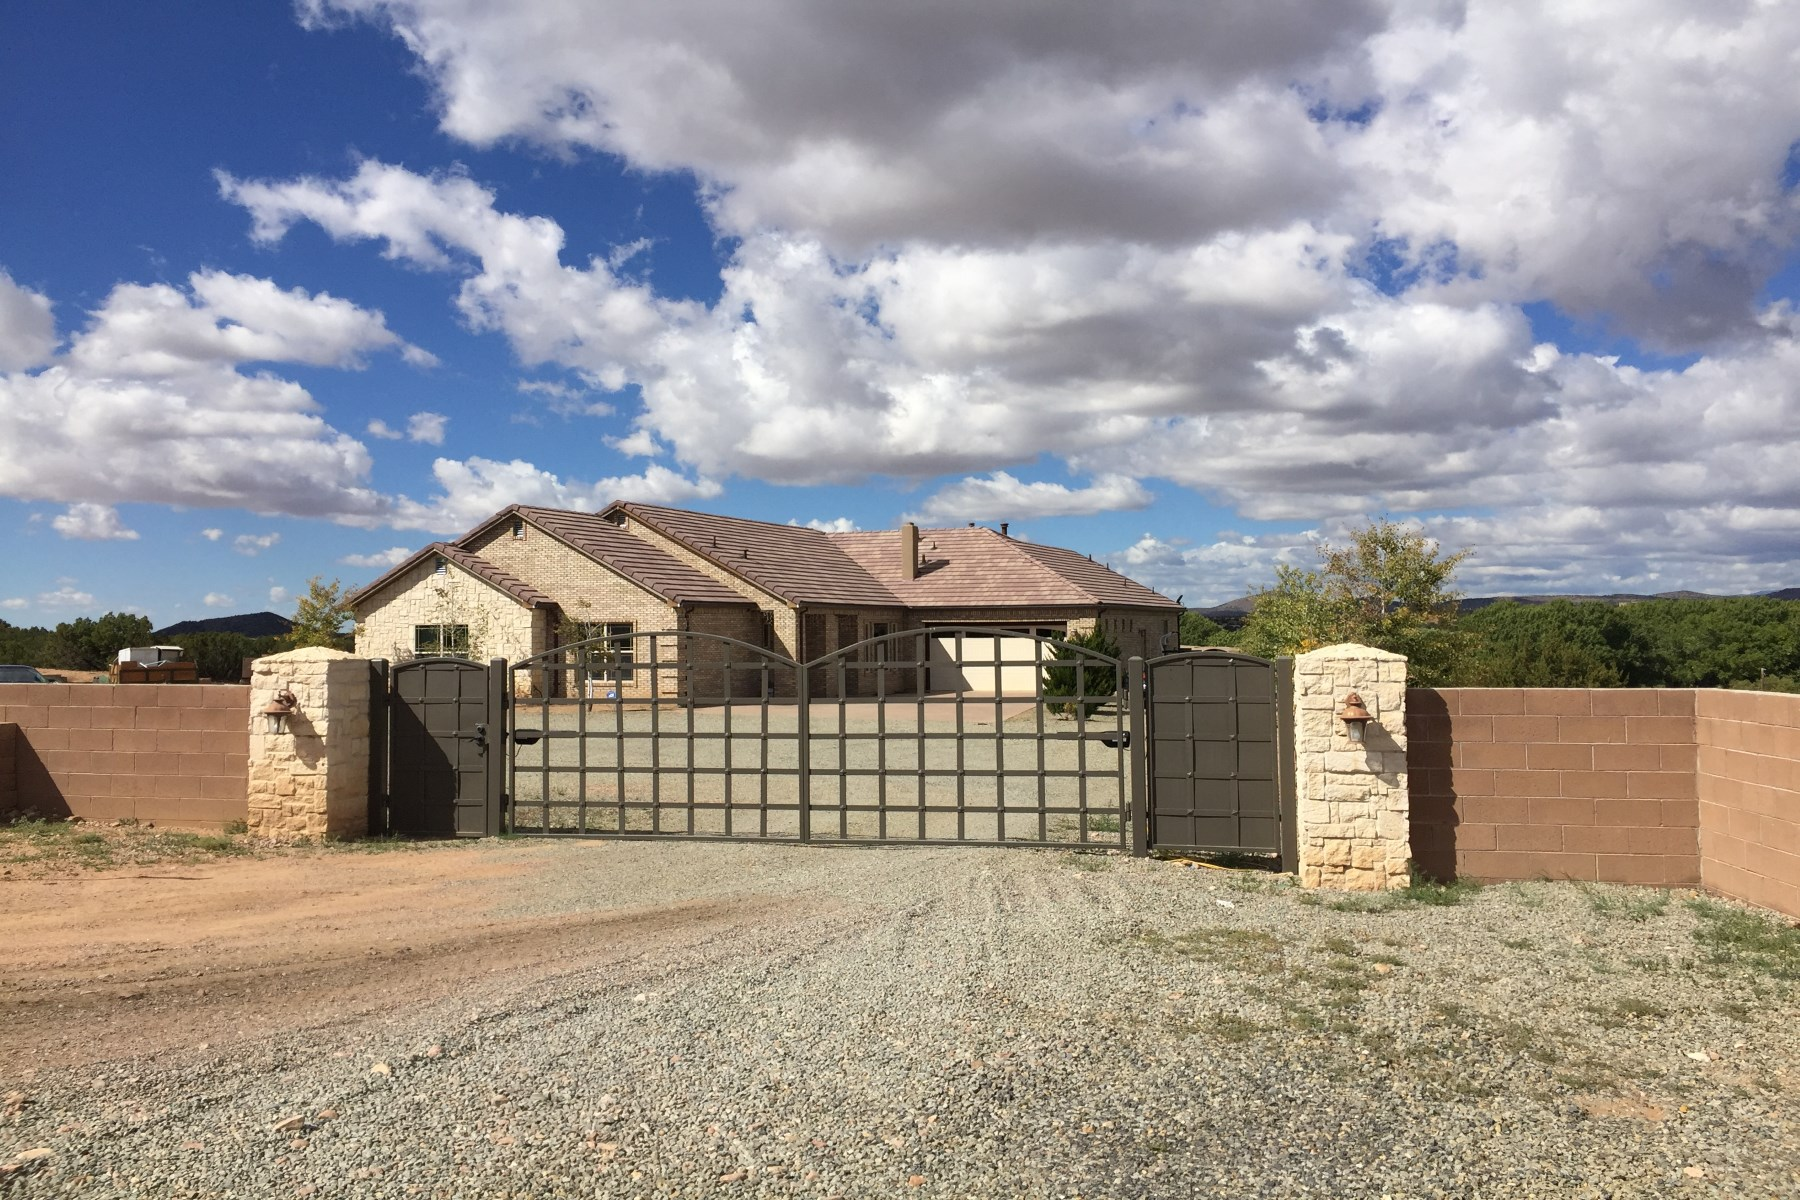 Single Family Home for Sale at 33 Estrellas Road North 33 Estrellas North Santa Fe, New Mexico, 87507 United States